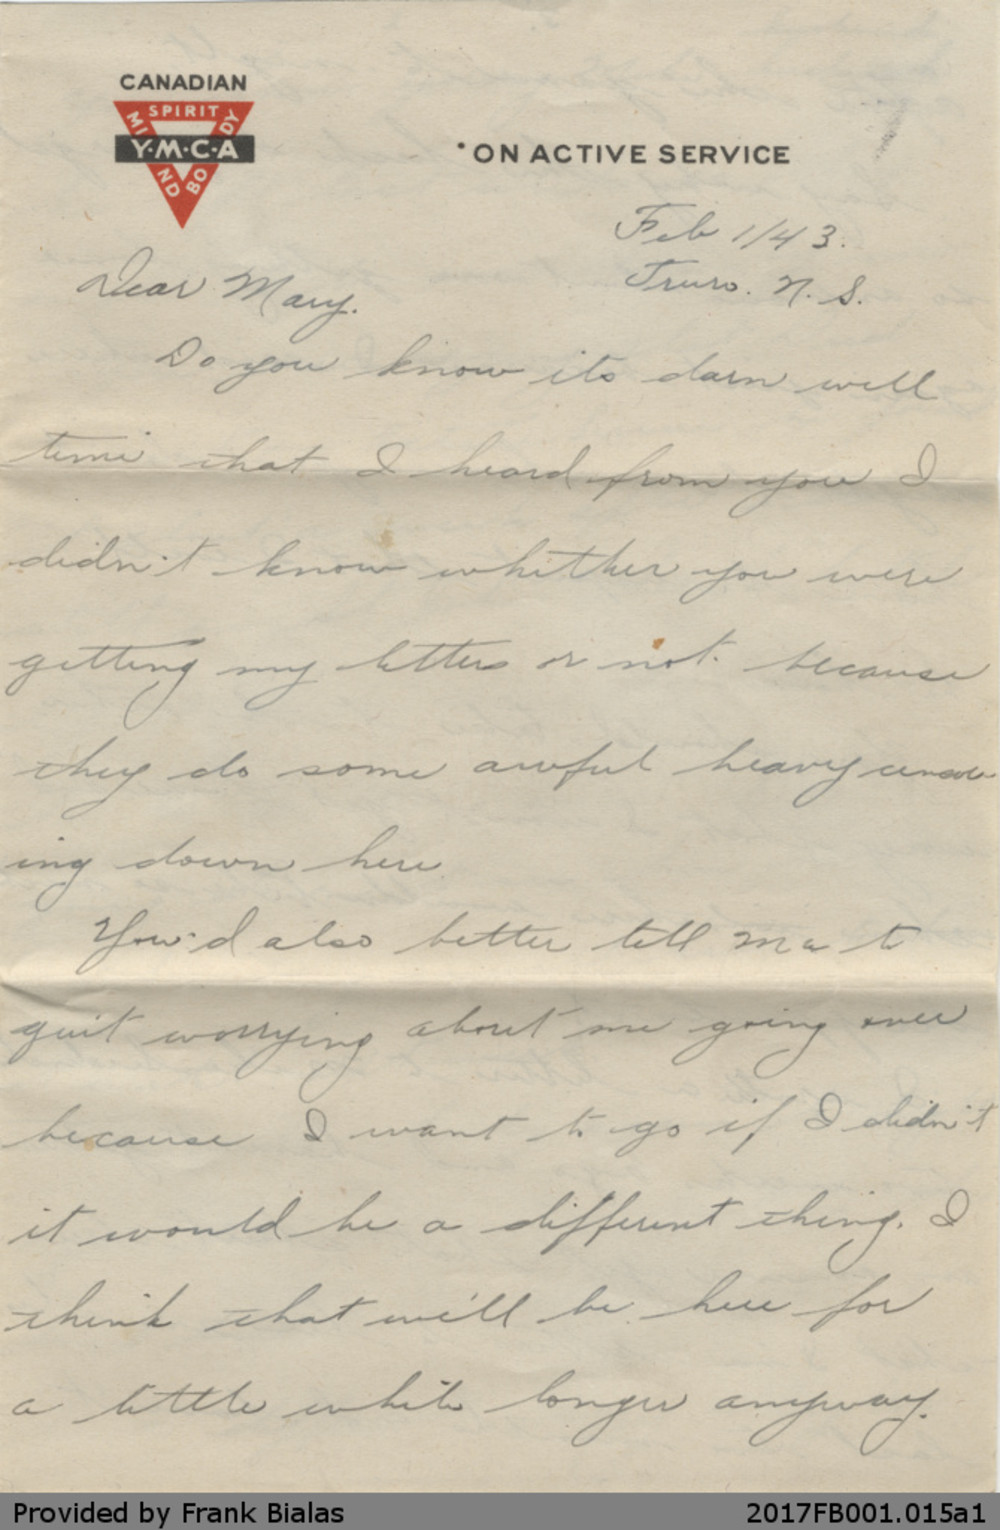 Letter, John Bialas to Mary Dancavitch, 1 February 1943